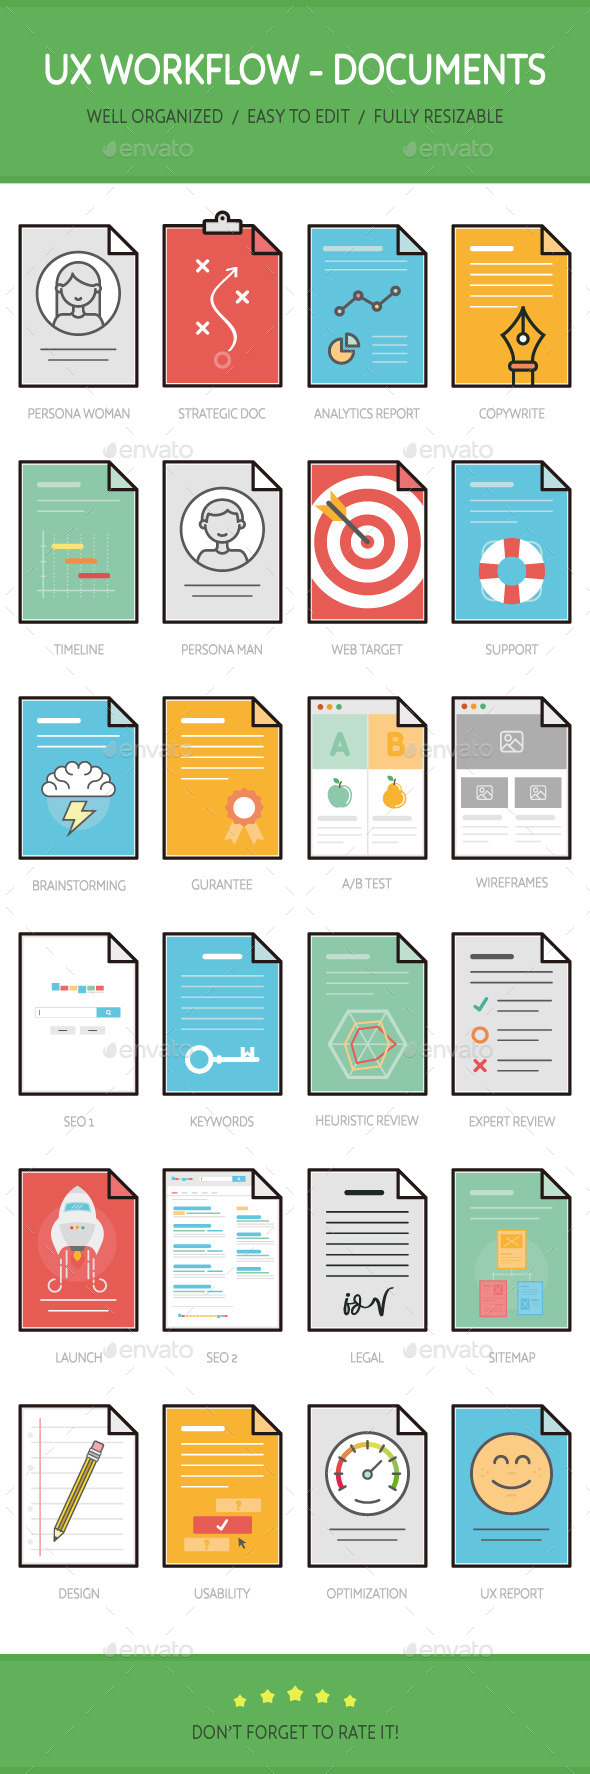 UX Workflow - Documents - Media Icons